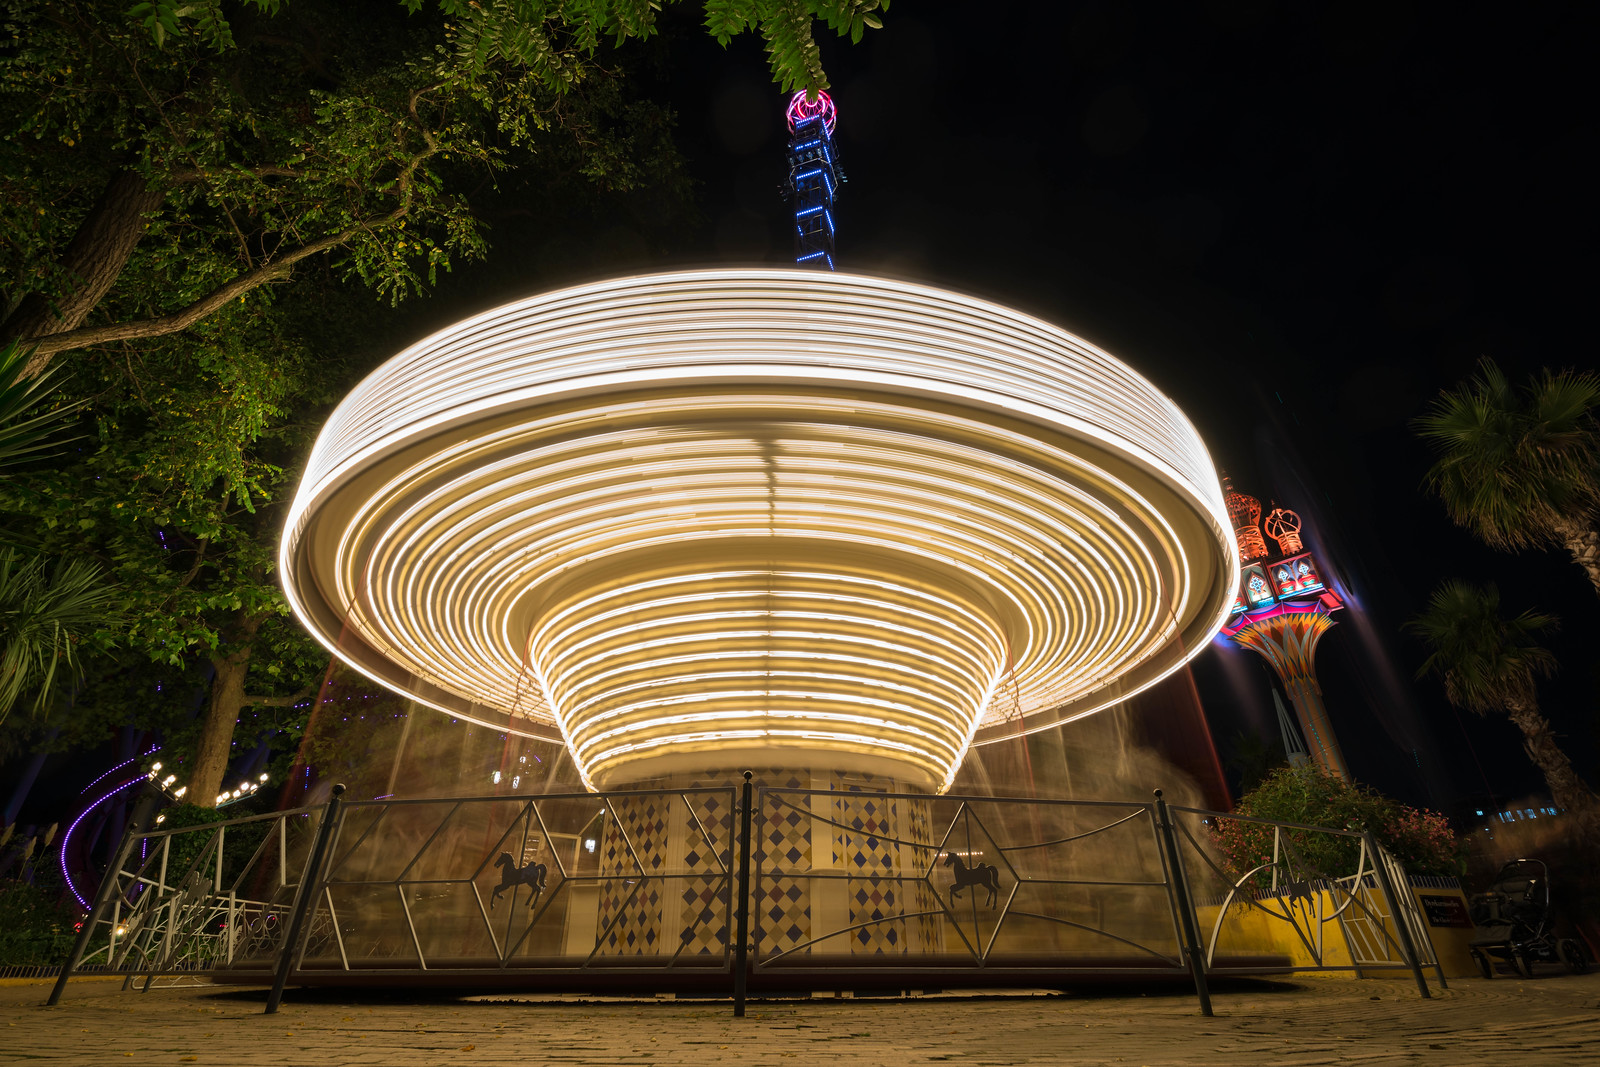 Even kids will have a blast on the classic rides at Tivoli Gardens